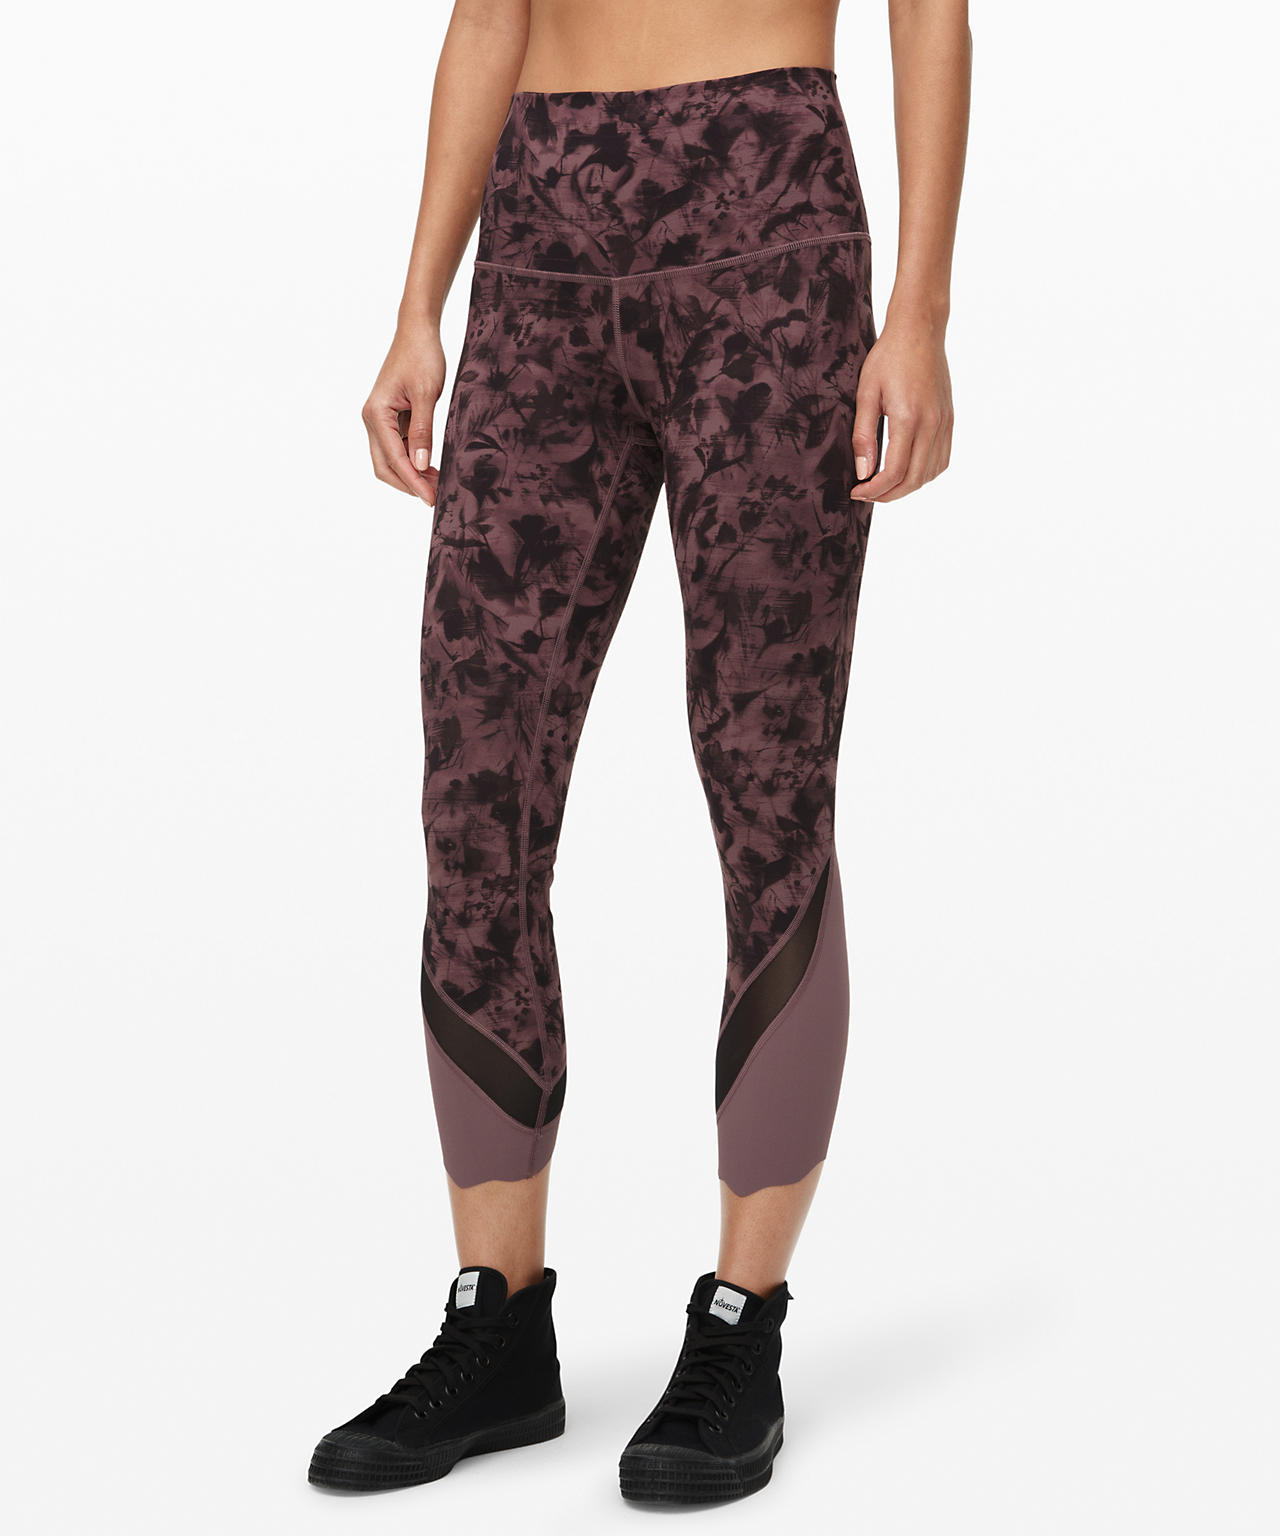 Wunder Under Scallop Lululemon